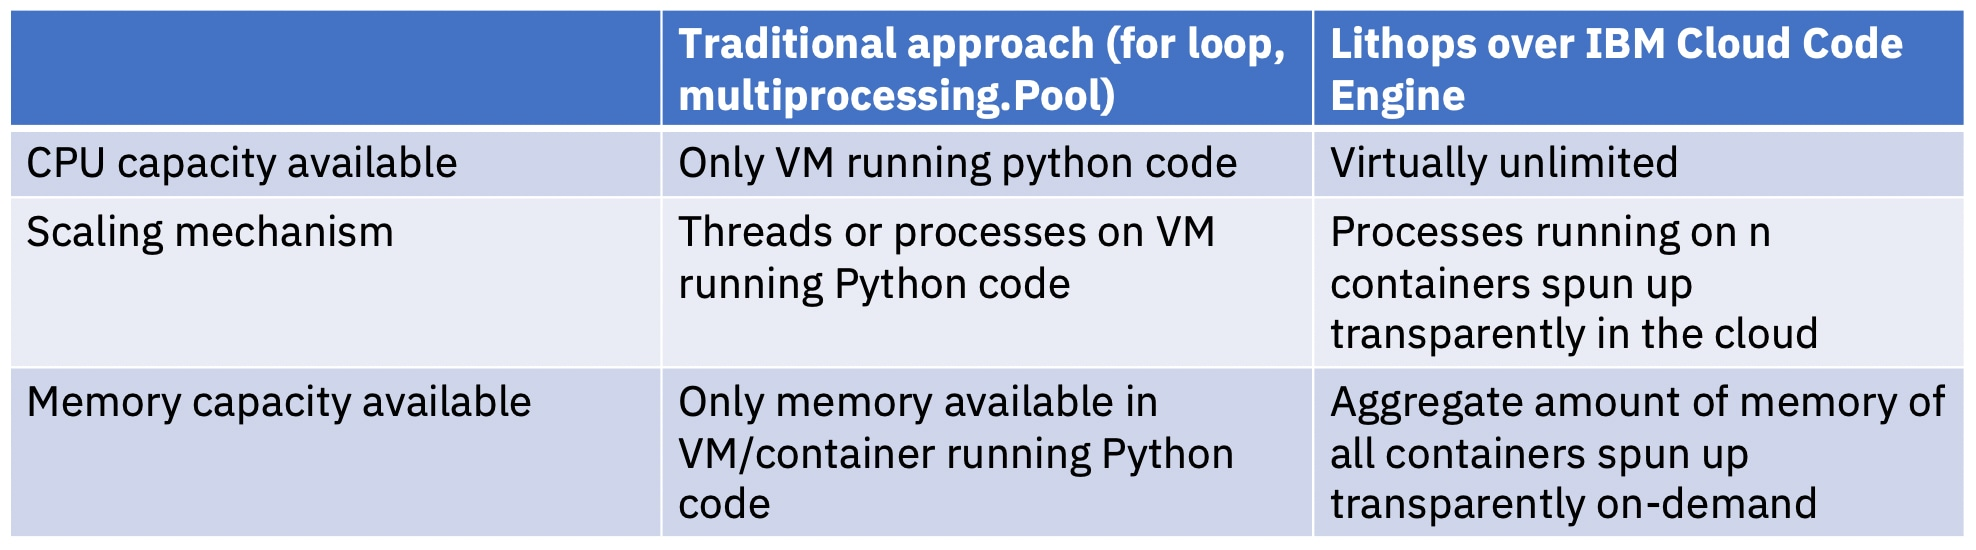 Beyond that, Lithops allows for pure parallelization across a conceptually unlimited pool of resources and the application of a reduce/aggregation step at the end.